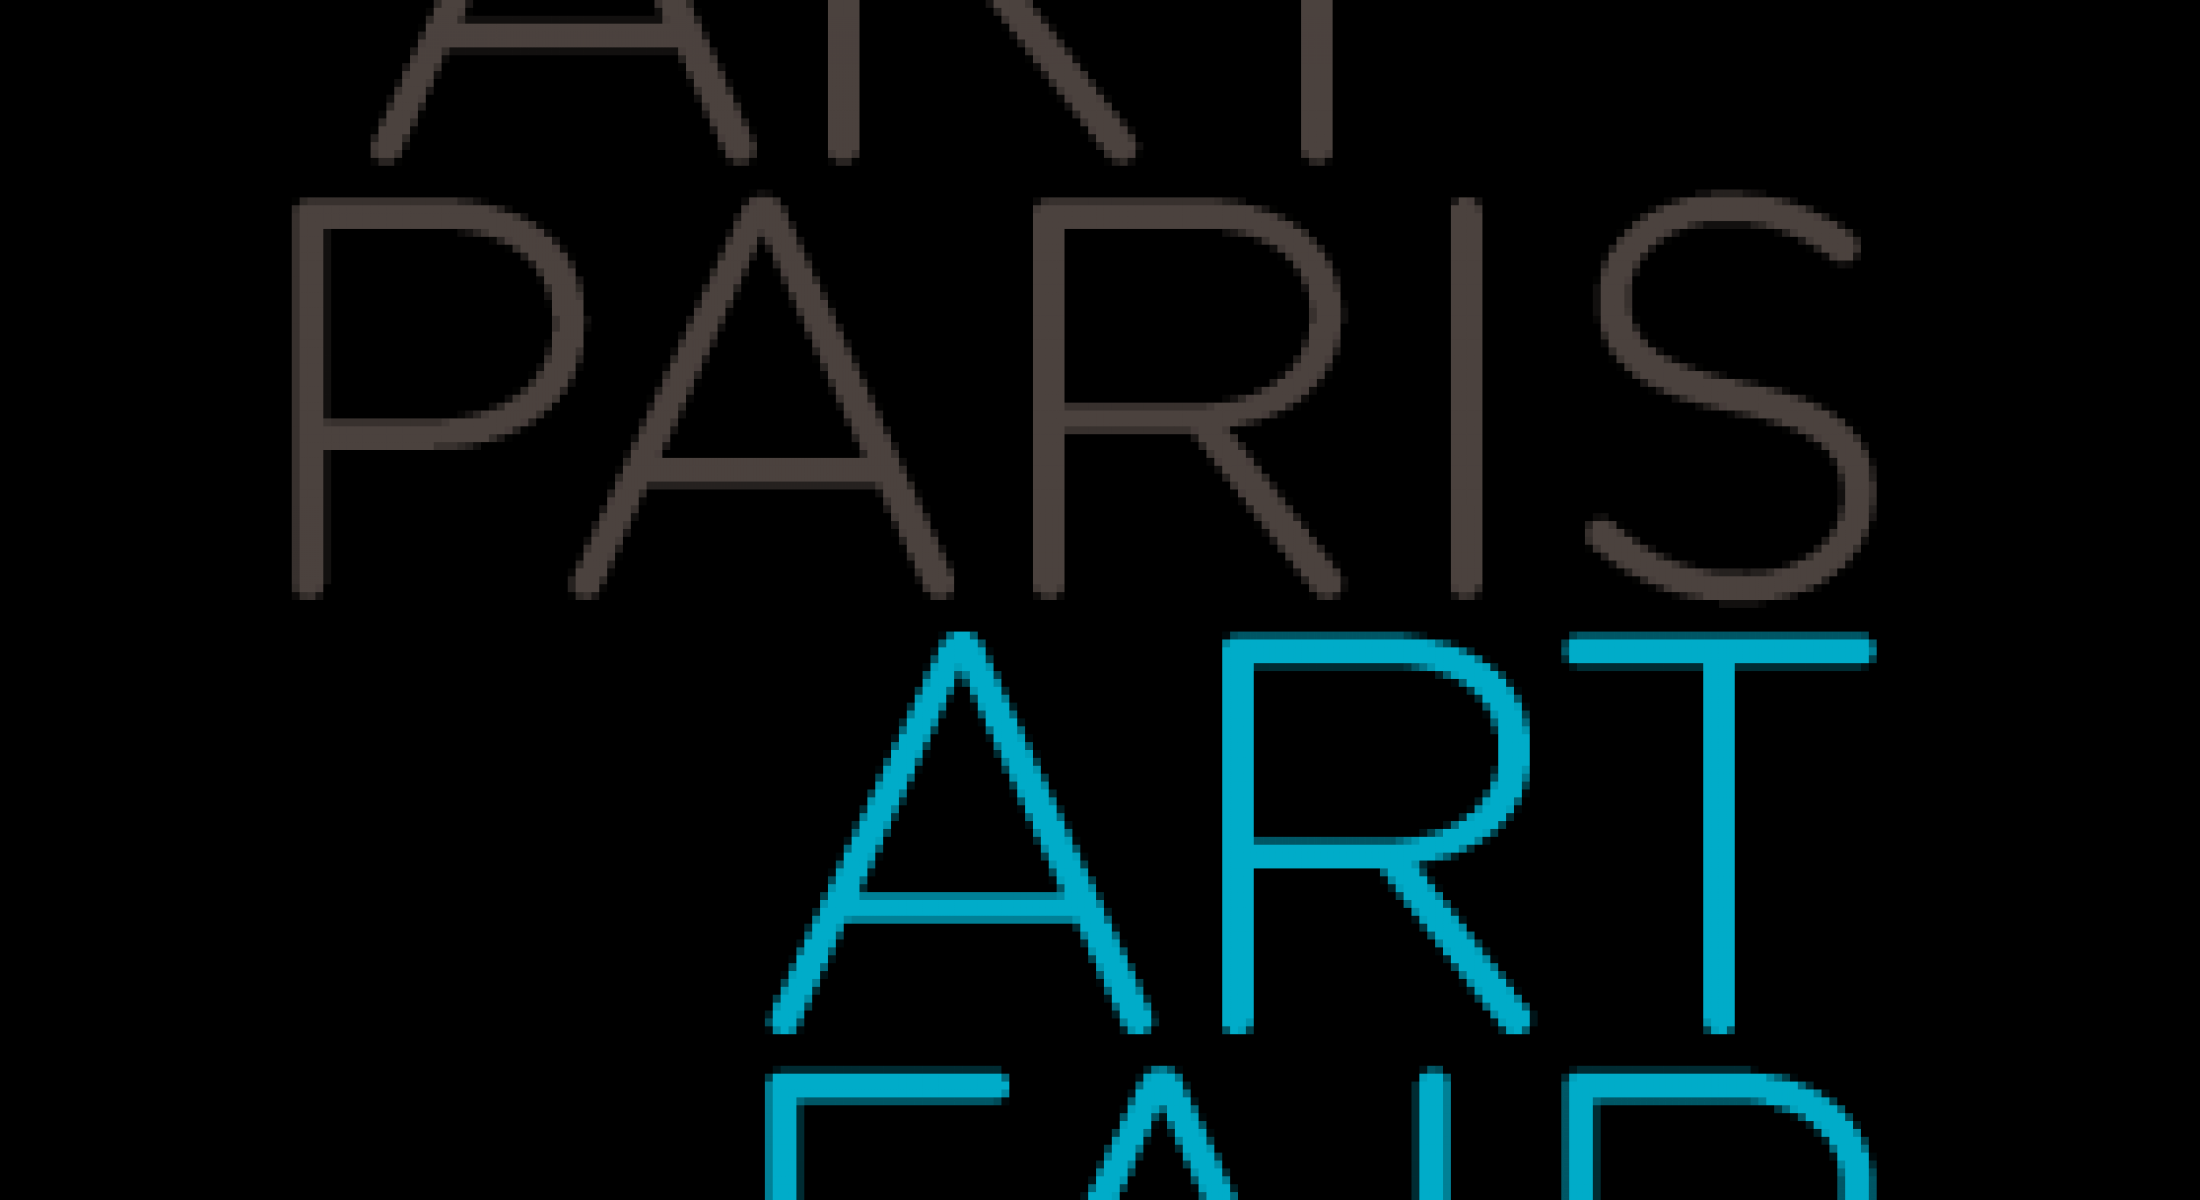 Art Paris Art Fair @ Credit Emmanuel Nguyen Ngoc, 2015